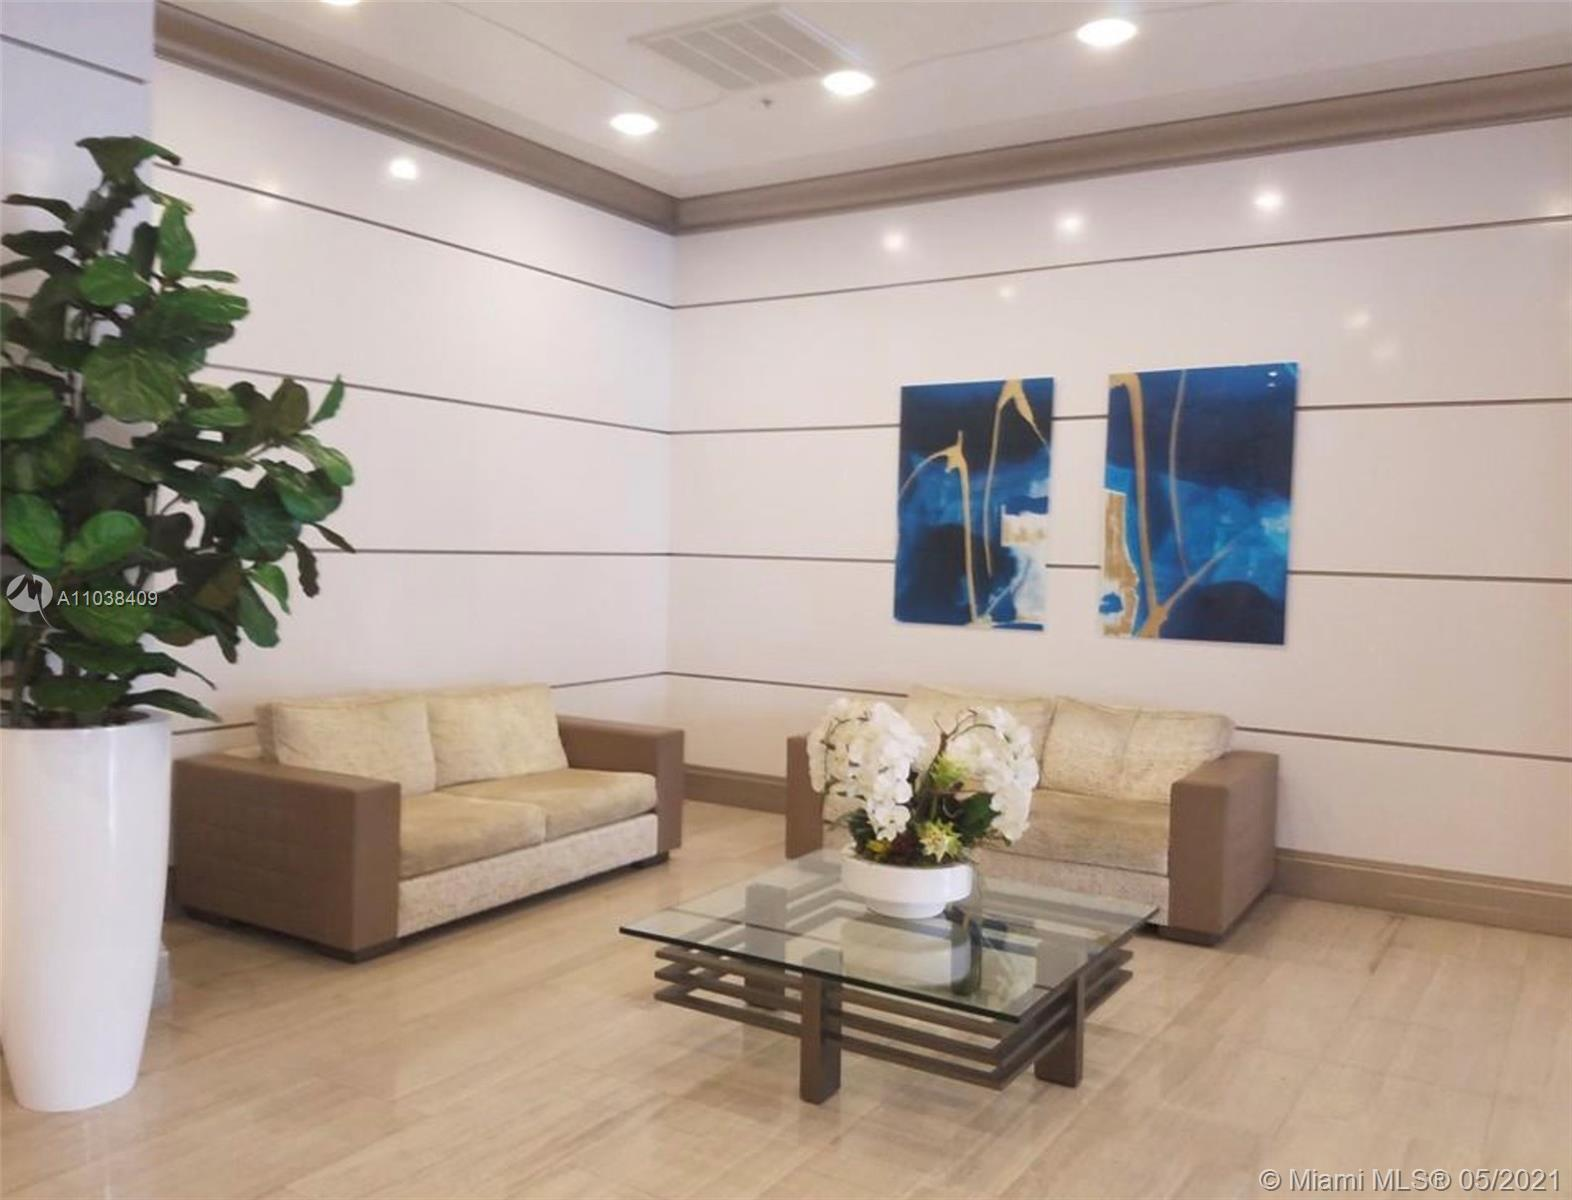 Spectacular 2 Bedrooms at OceanView A, Waterfront Building, Very Nice View, Partial Ocean View, Comp